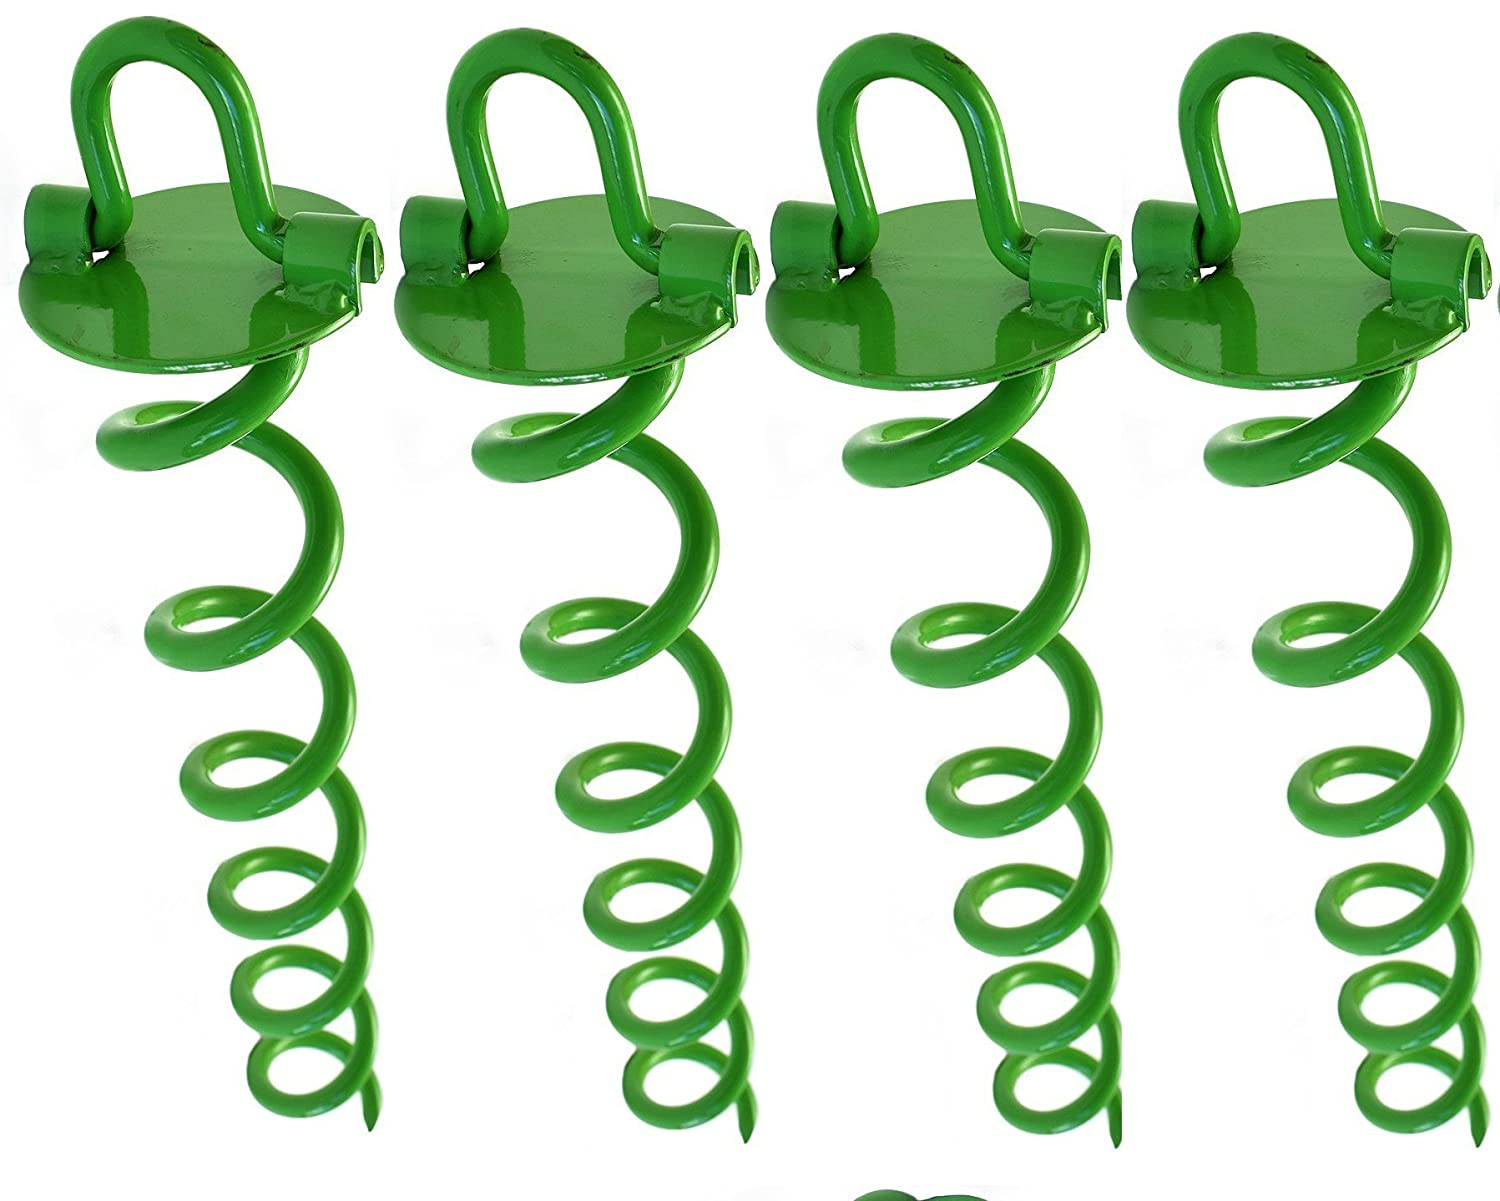 Ideal for Securing Animals Car Ports Ashman 16 Inch Spiral Ground Anchor Green Color Canopies Sheds Swing Sets Tents